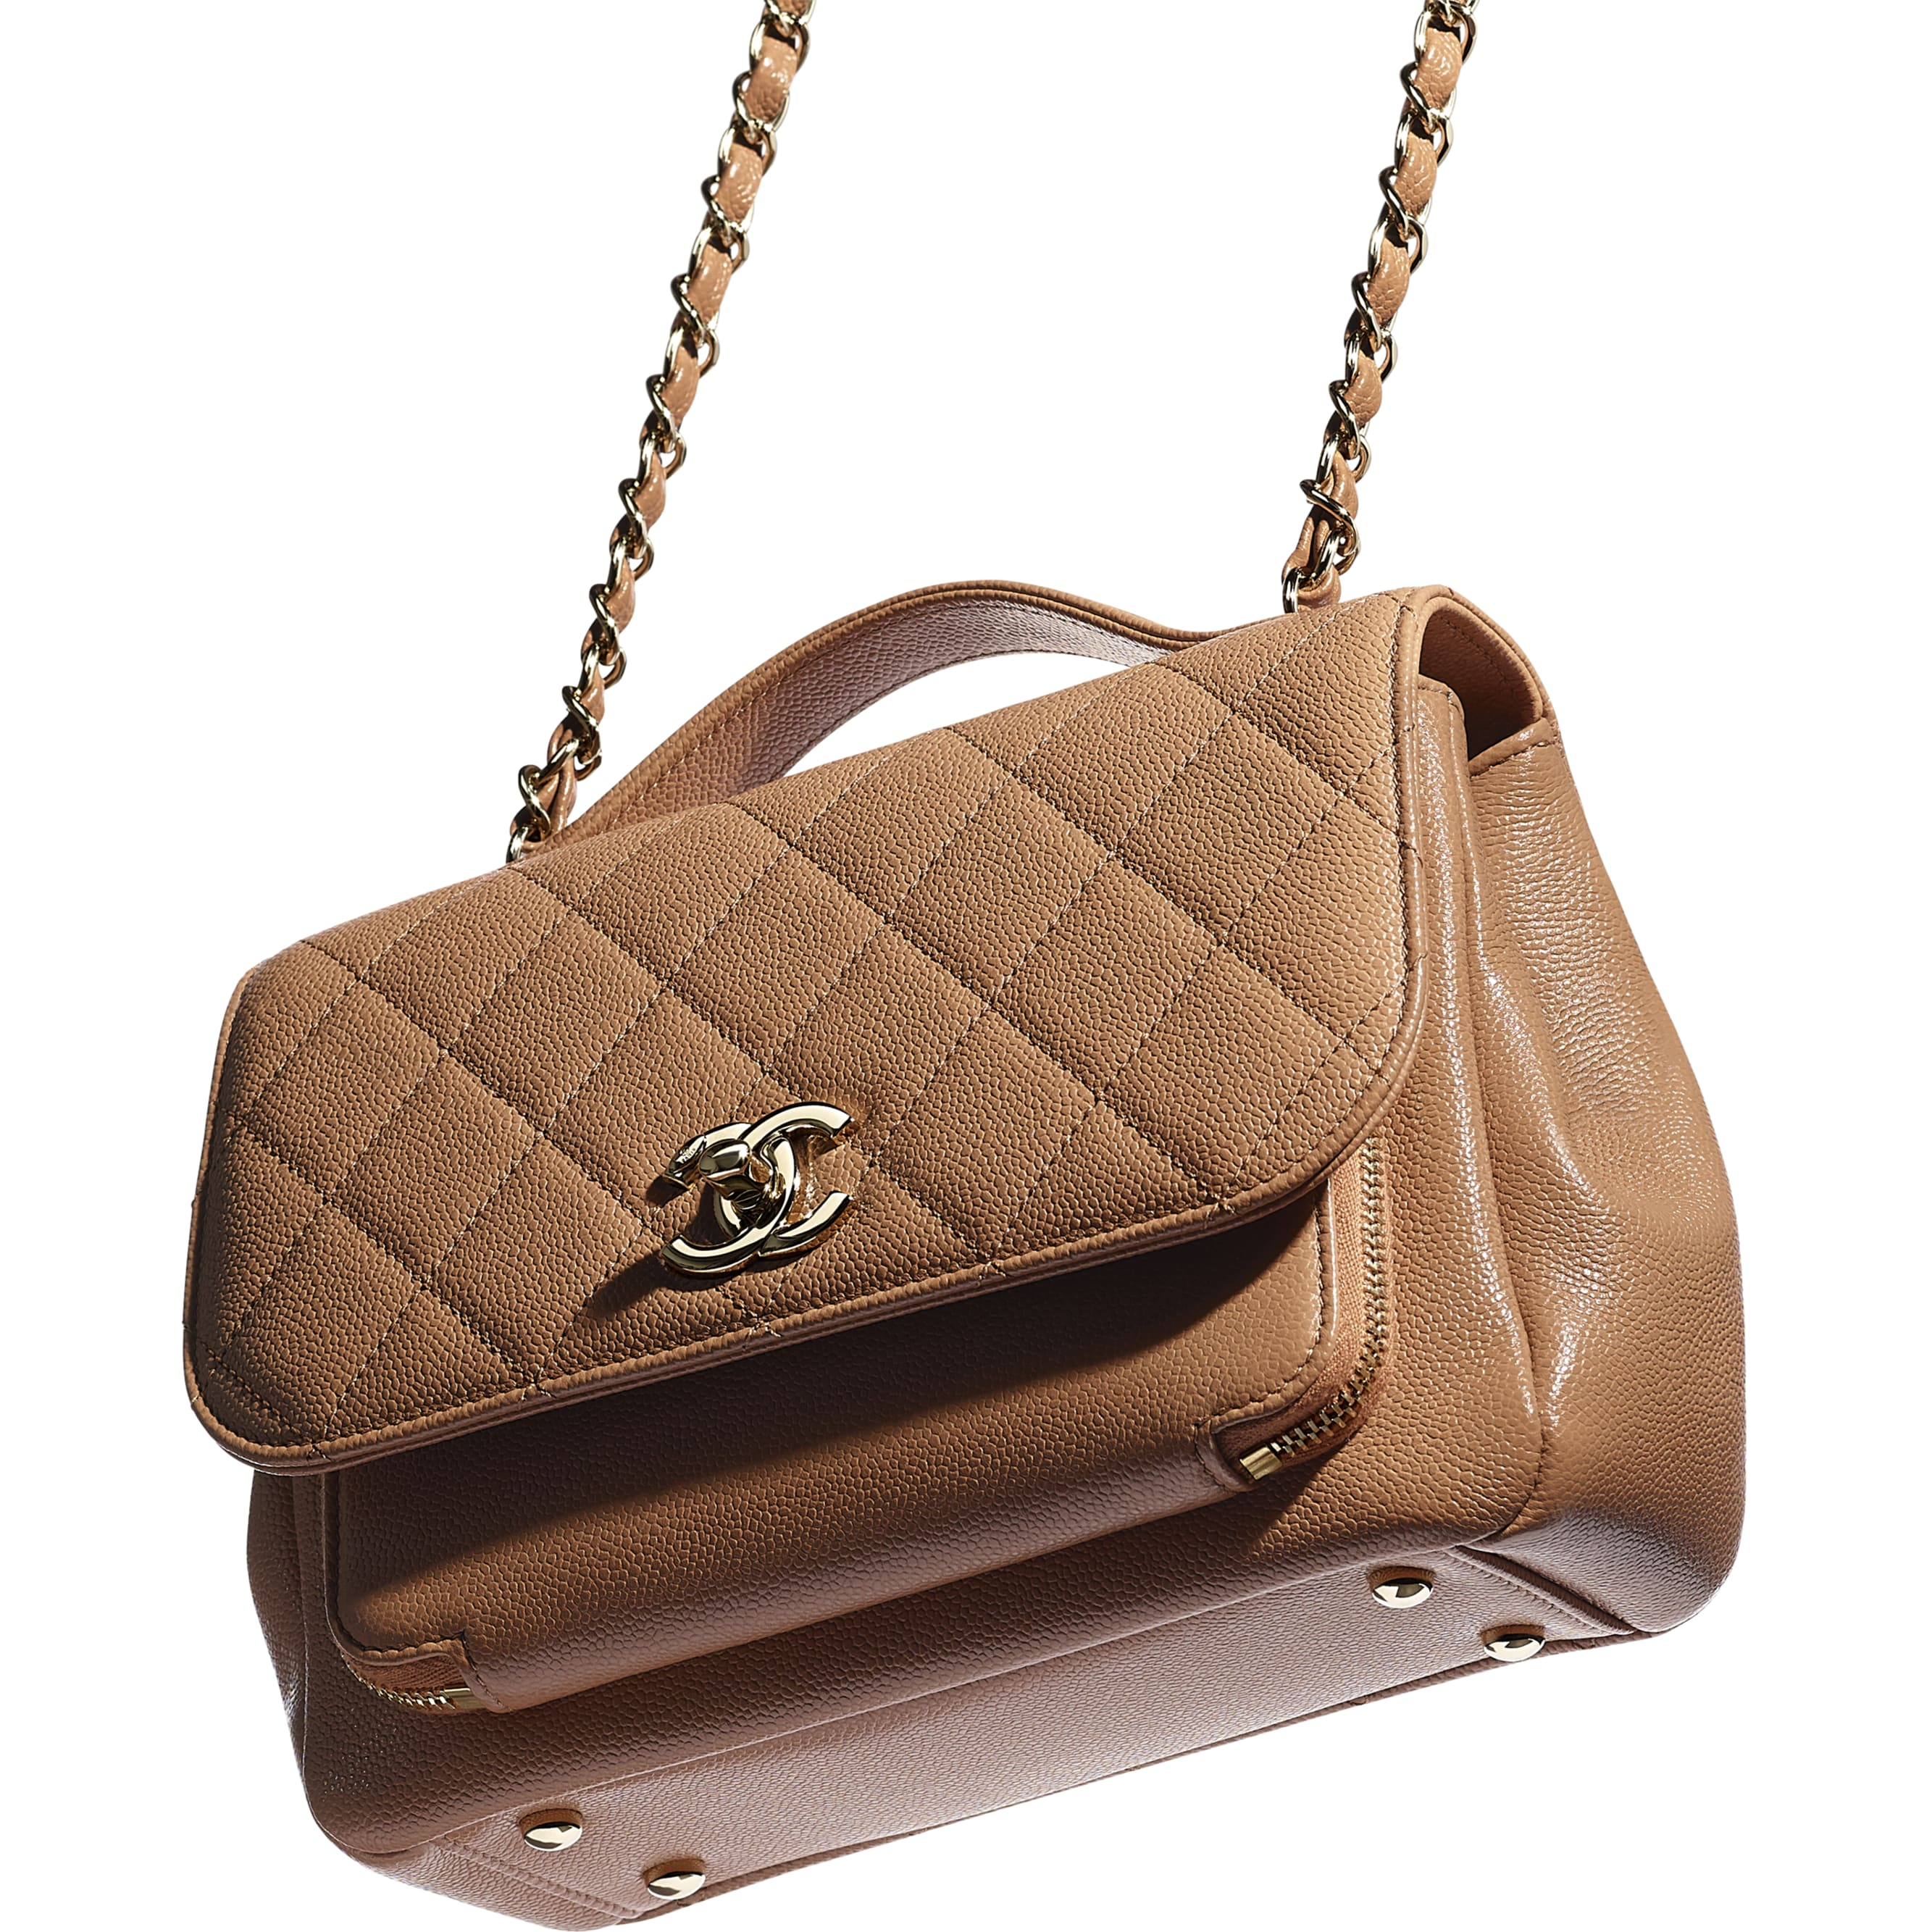 Small Flap Bag With Top Handle - Brown - Grained Calfskin & Gold-Tone Metal - CHANEL - Extra view - see standard sized version